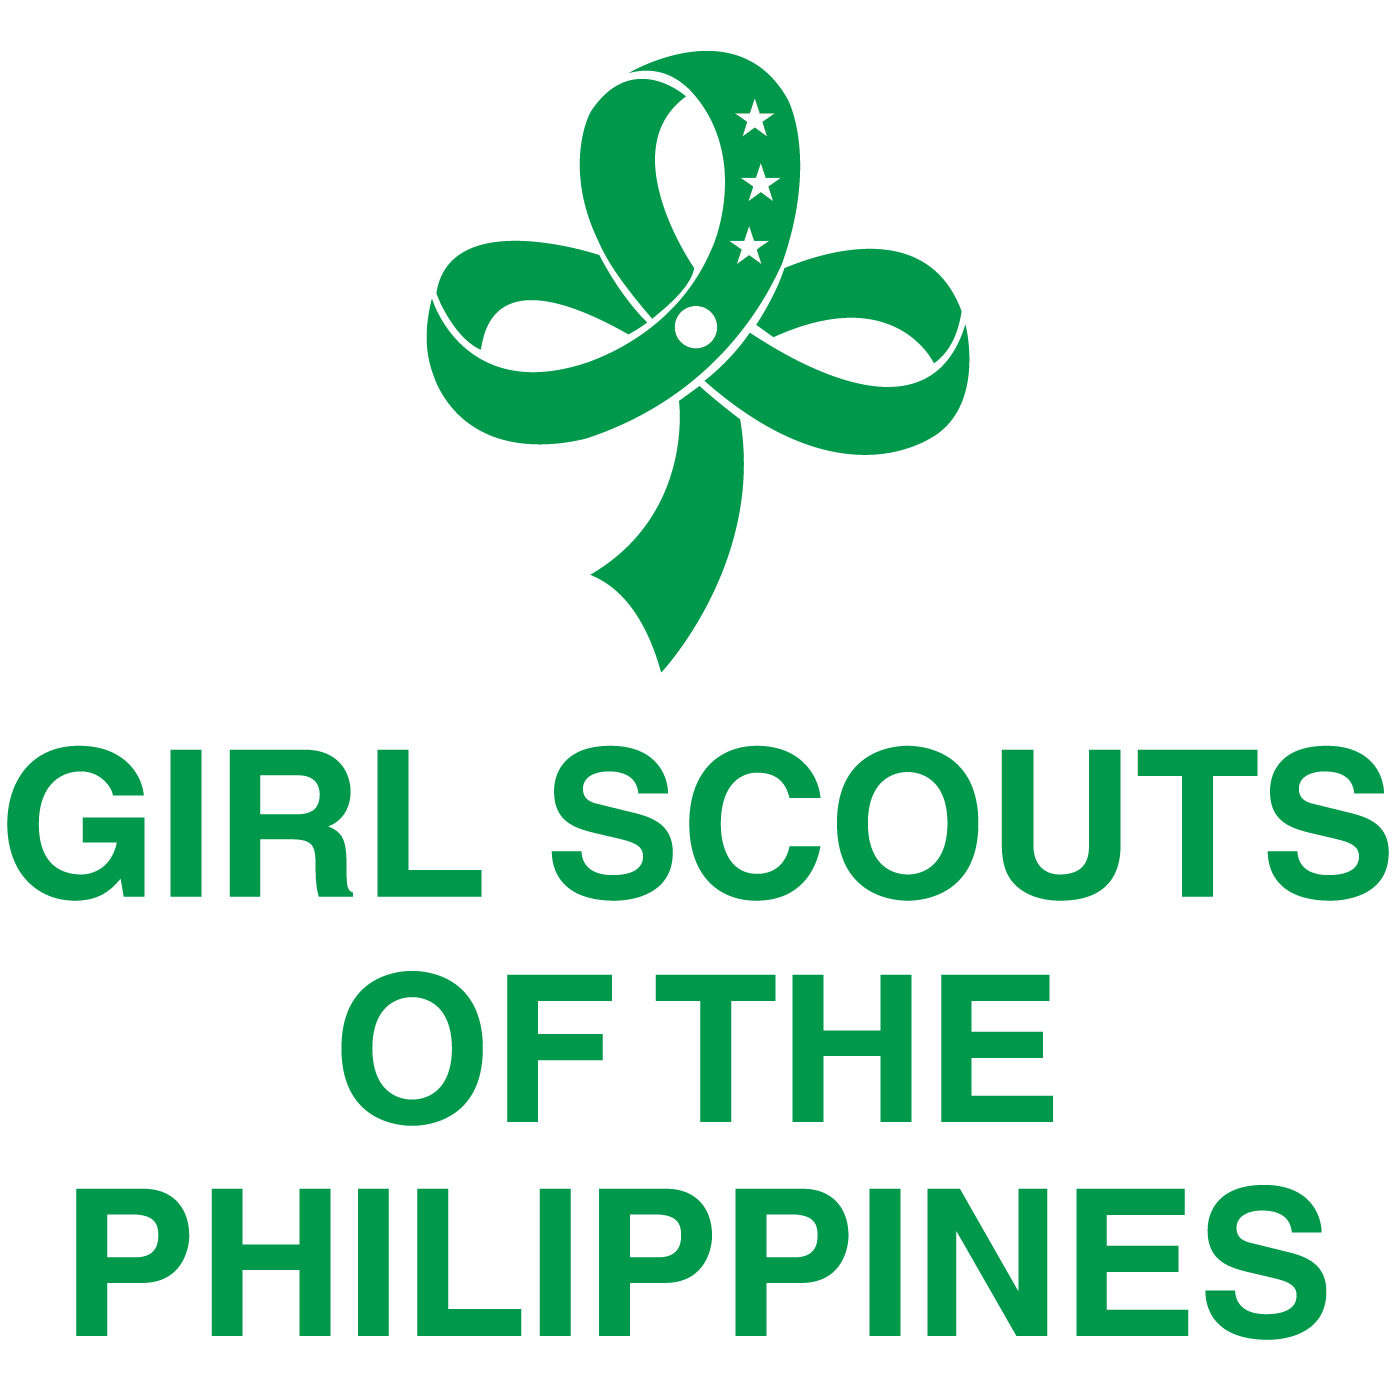 Girl Scouts Logo Transparent & PNG Clipart Free Download - YA-webdesign